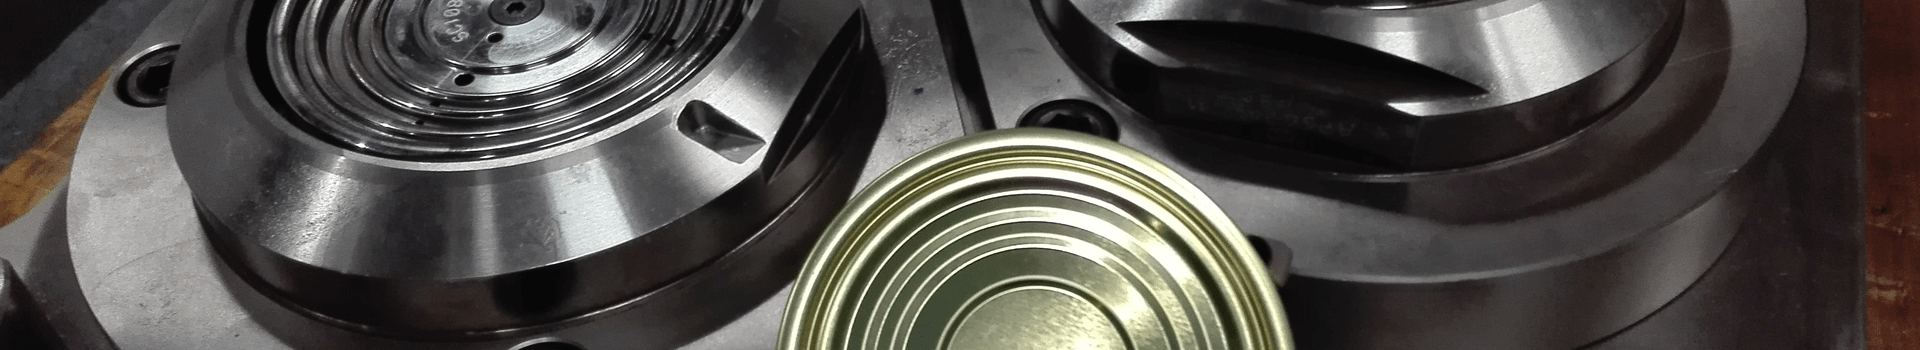 Food Cans Banner 2